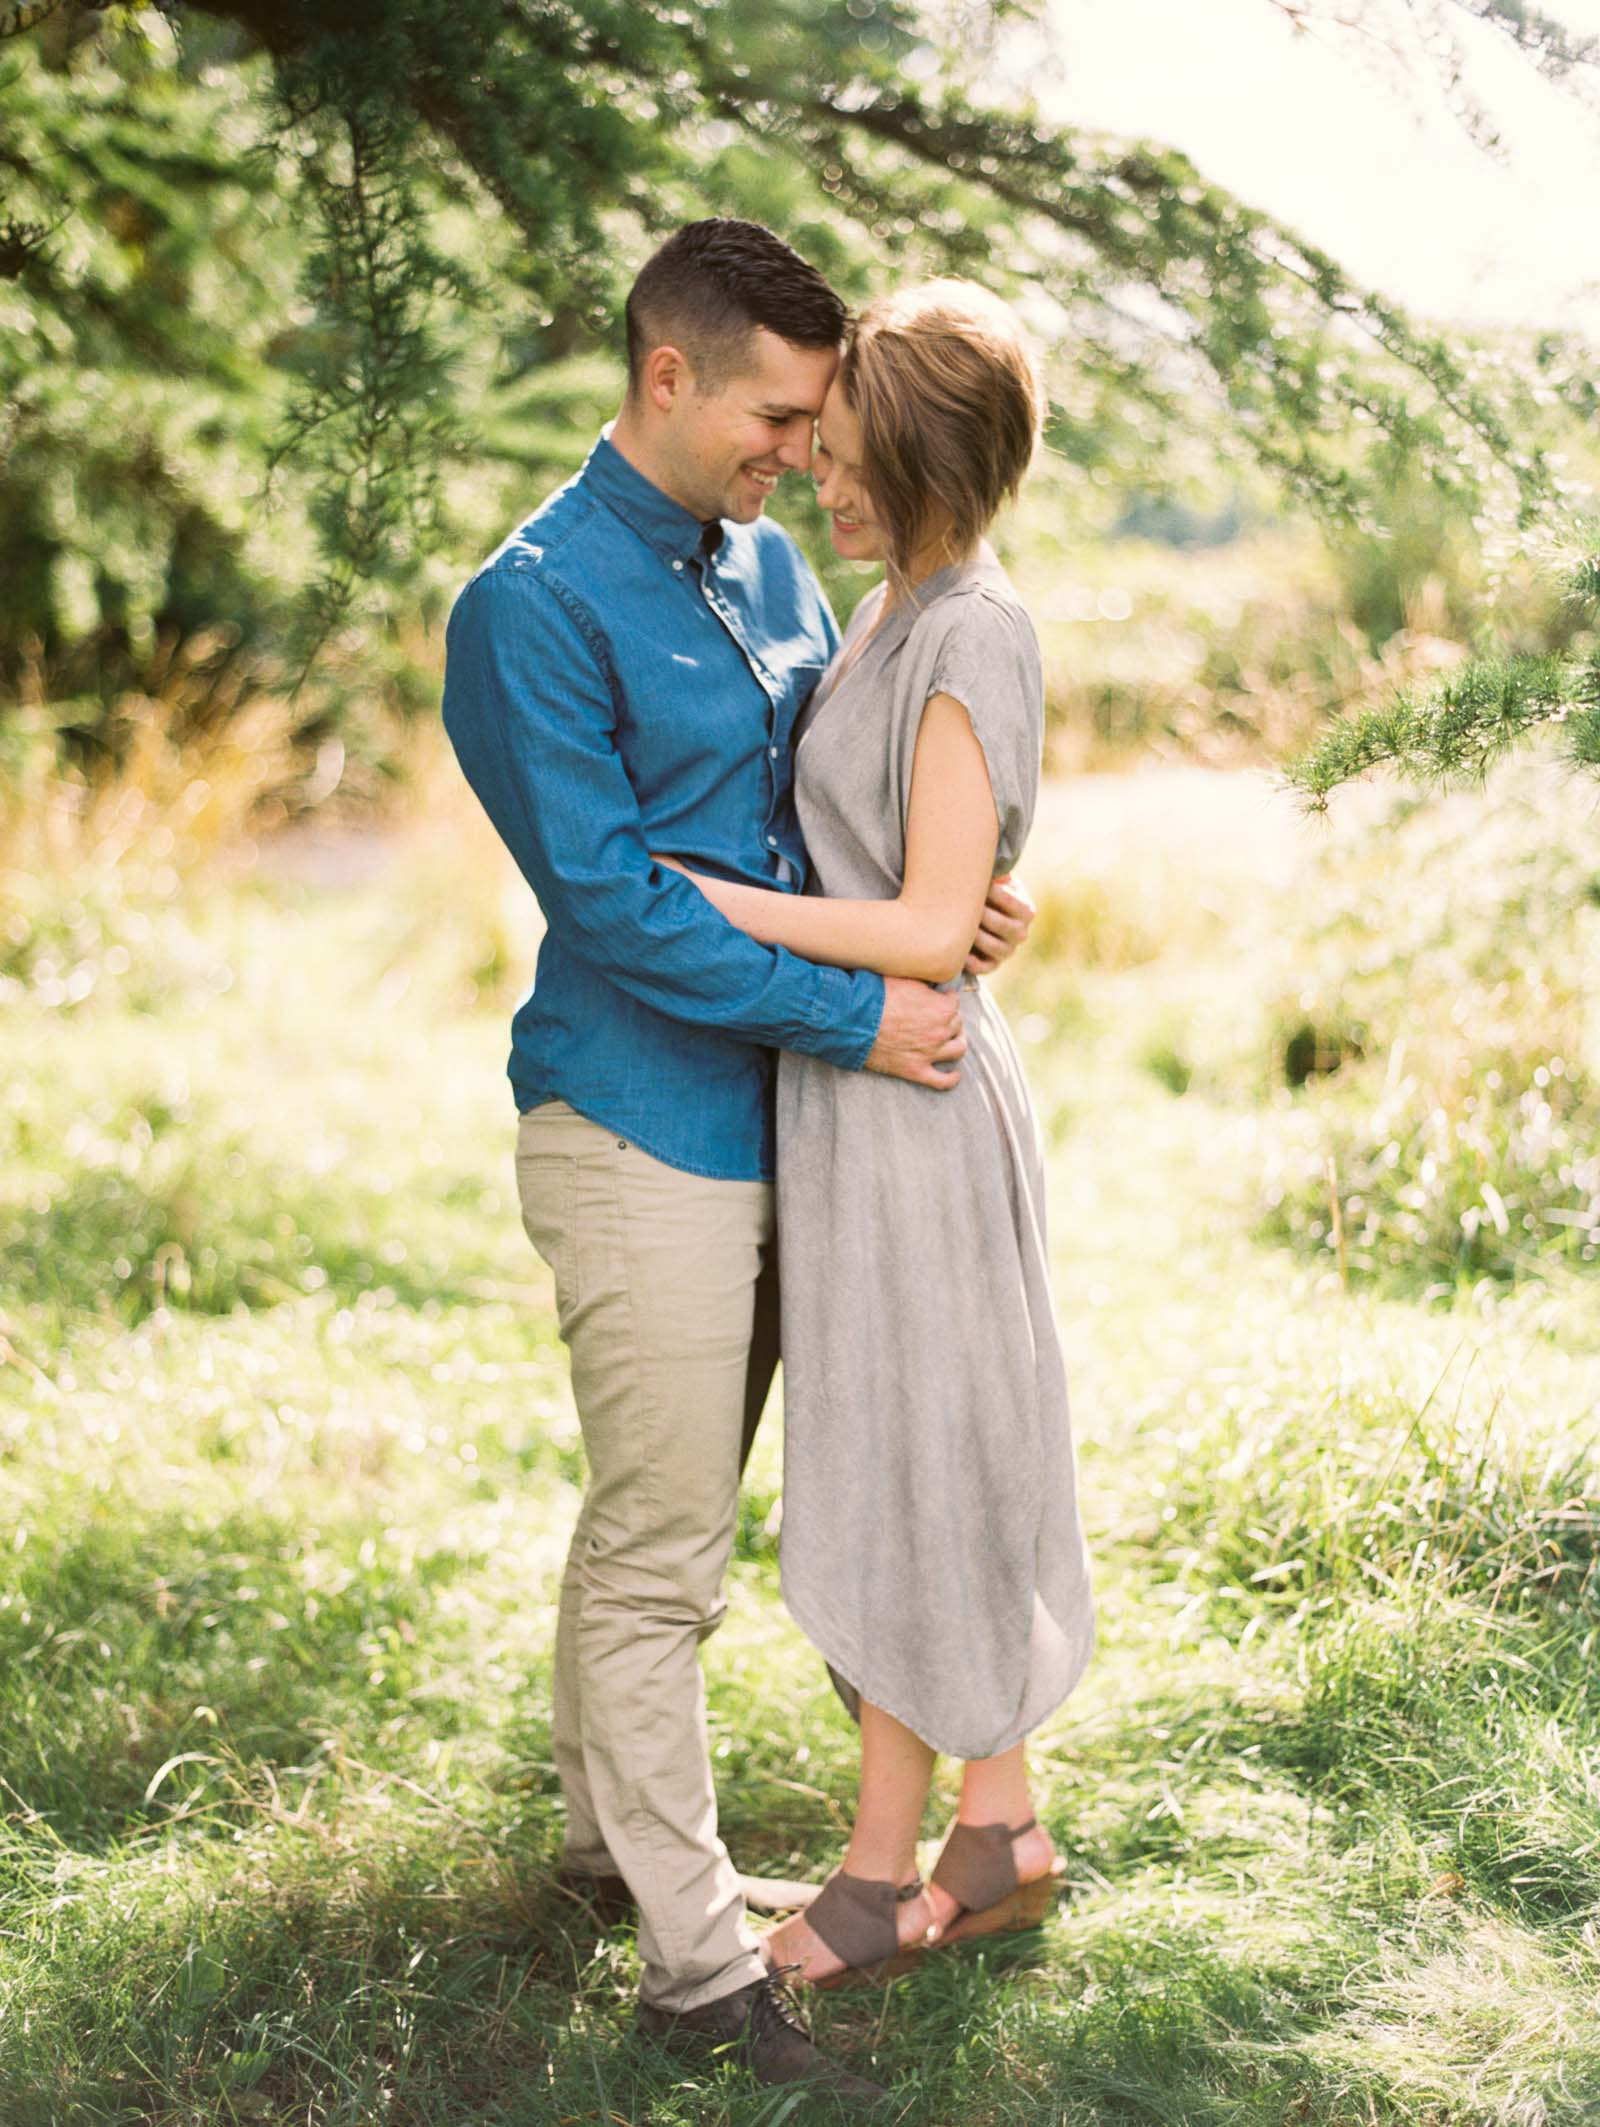 A romantic embrace at discovery park captured on film by top Seattle Engagement Photographer Anna Peters